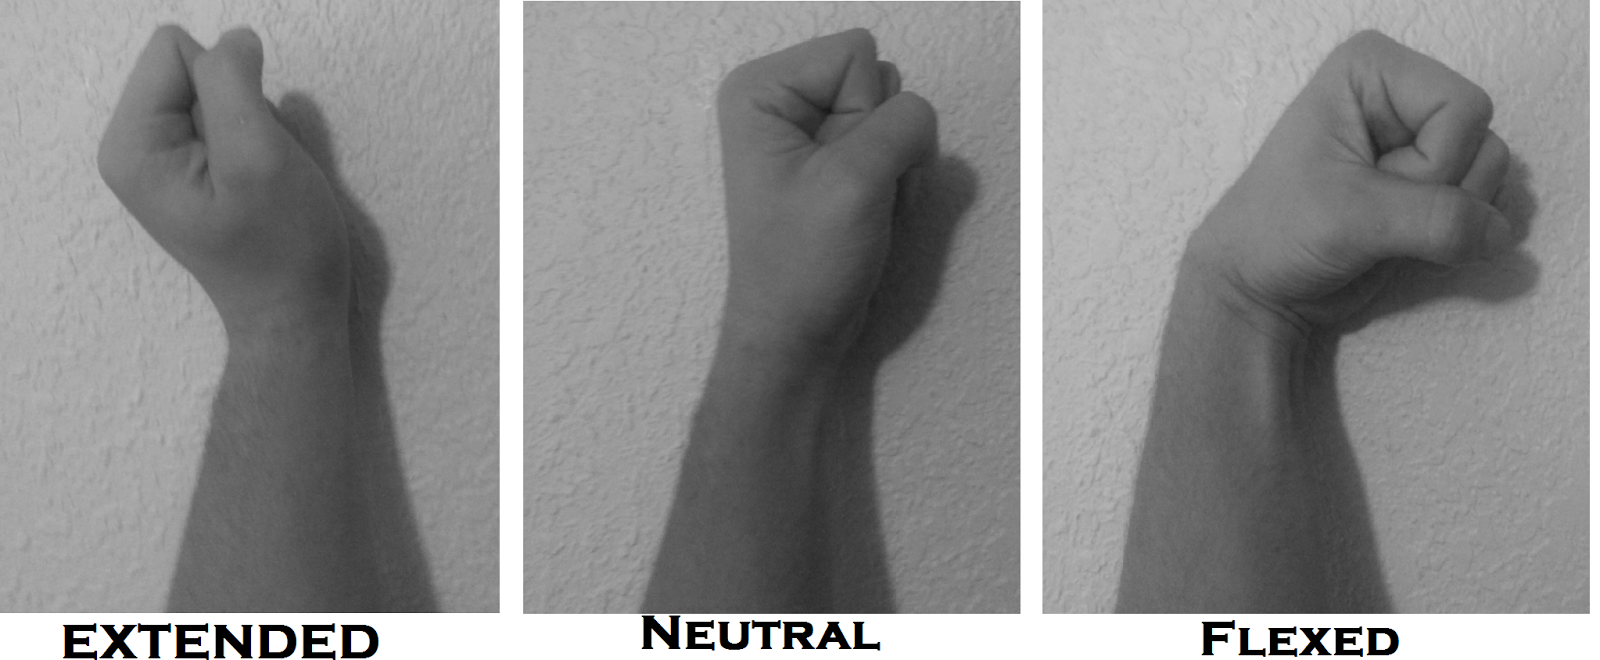 extended wrist position, neutral  wrist position, and flexed wrist position